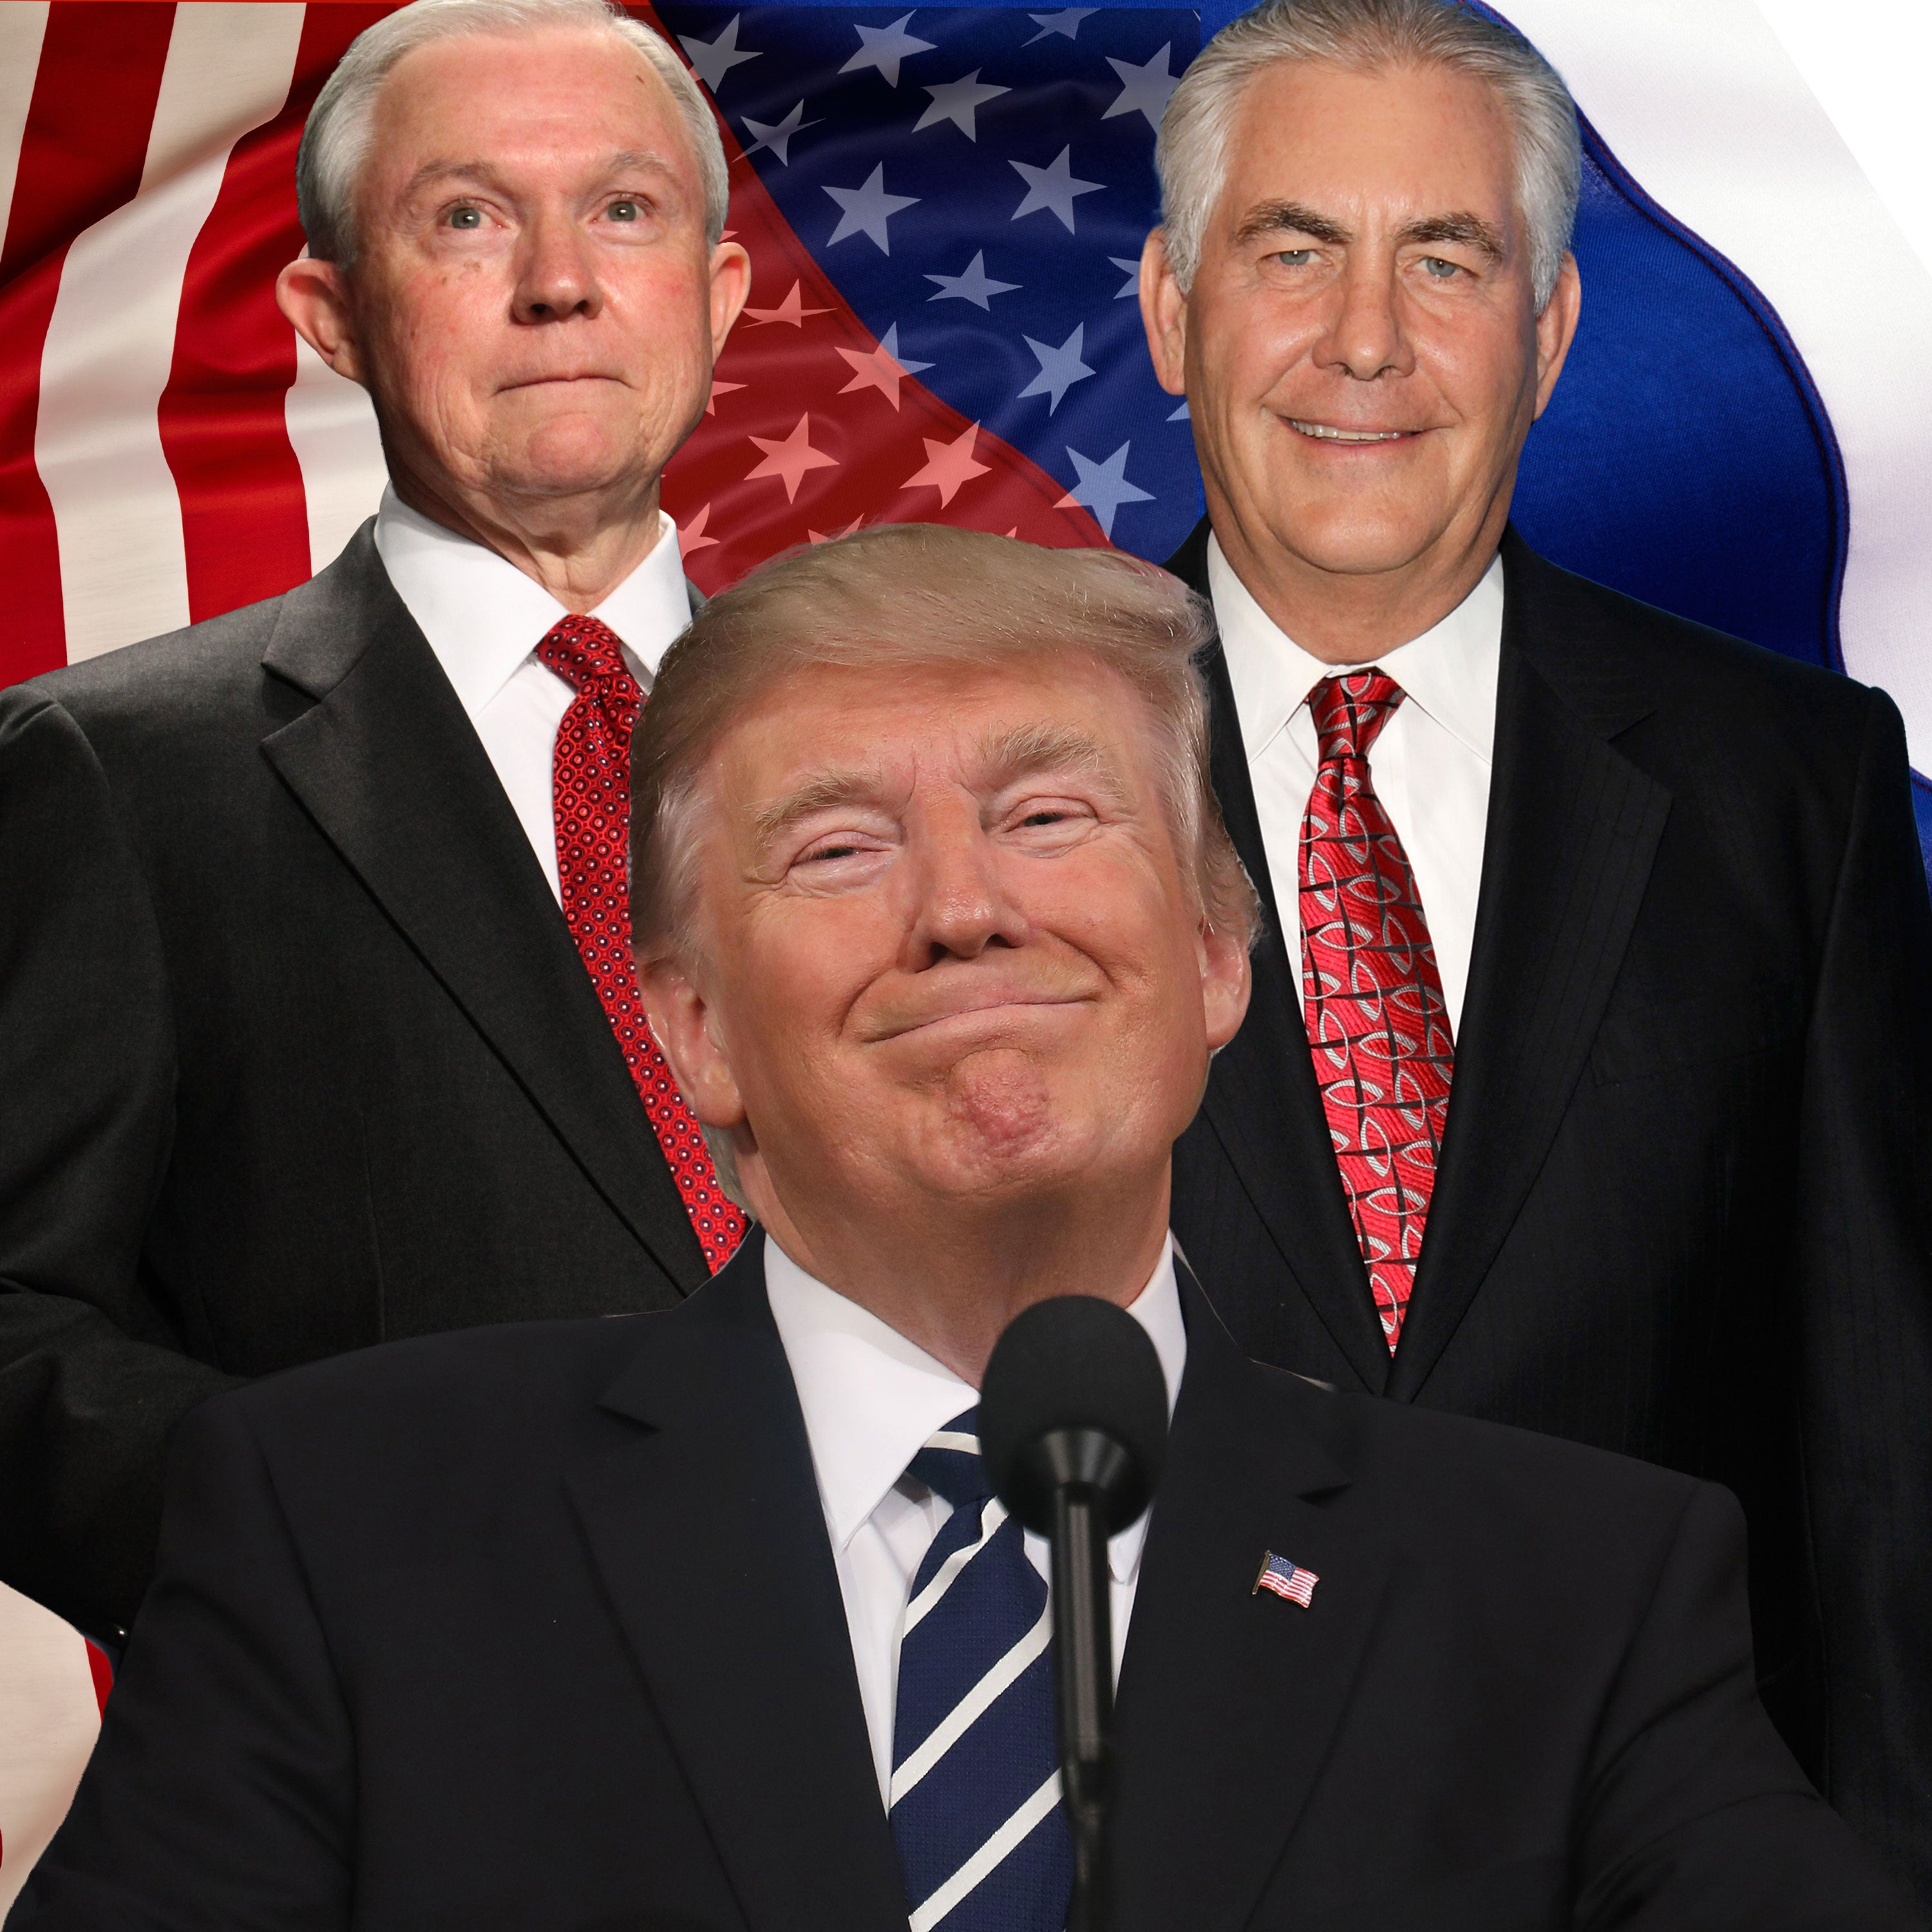 Jeff Sessions And Other Trump Officials WithUndeniable Ties To Russia